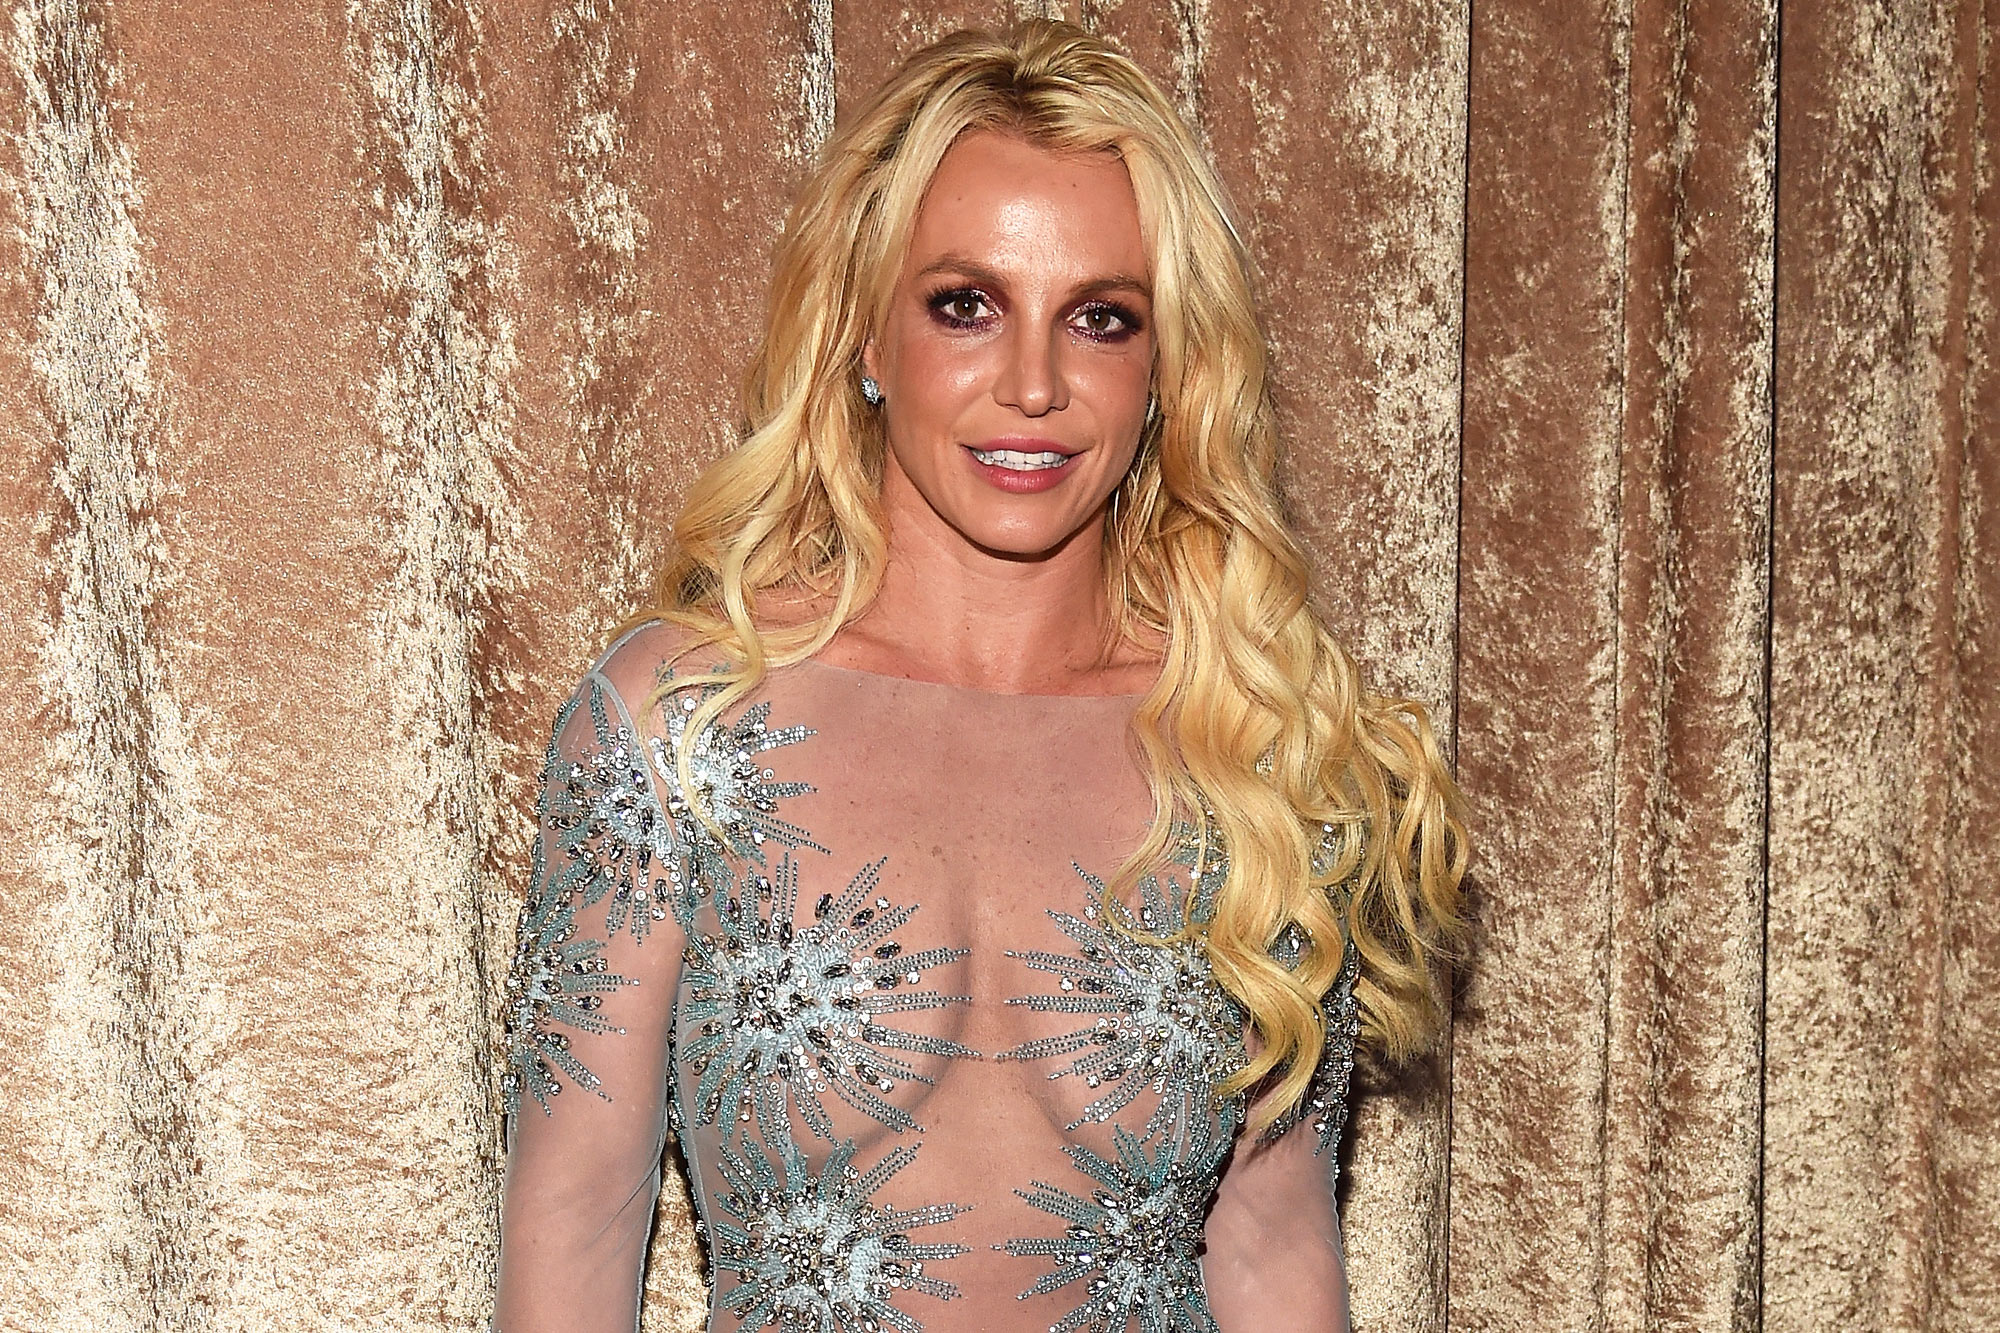 Britney Spears attends Pre-GRAMMY Gala and Salute to Industry Icons Honoring Debra Lee at The Beverly Hilton on February 11, 2017 in Los Angeles, California.